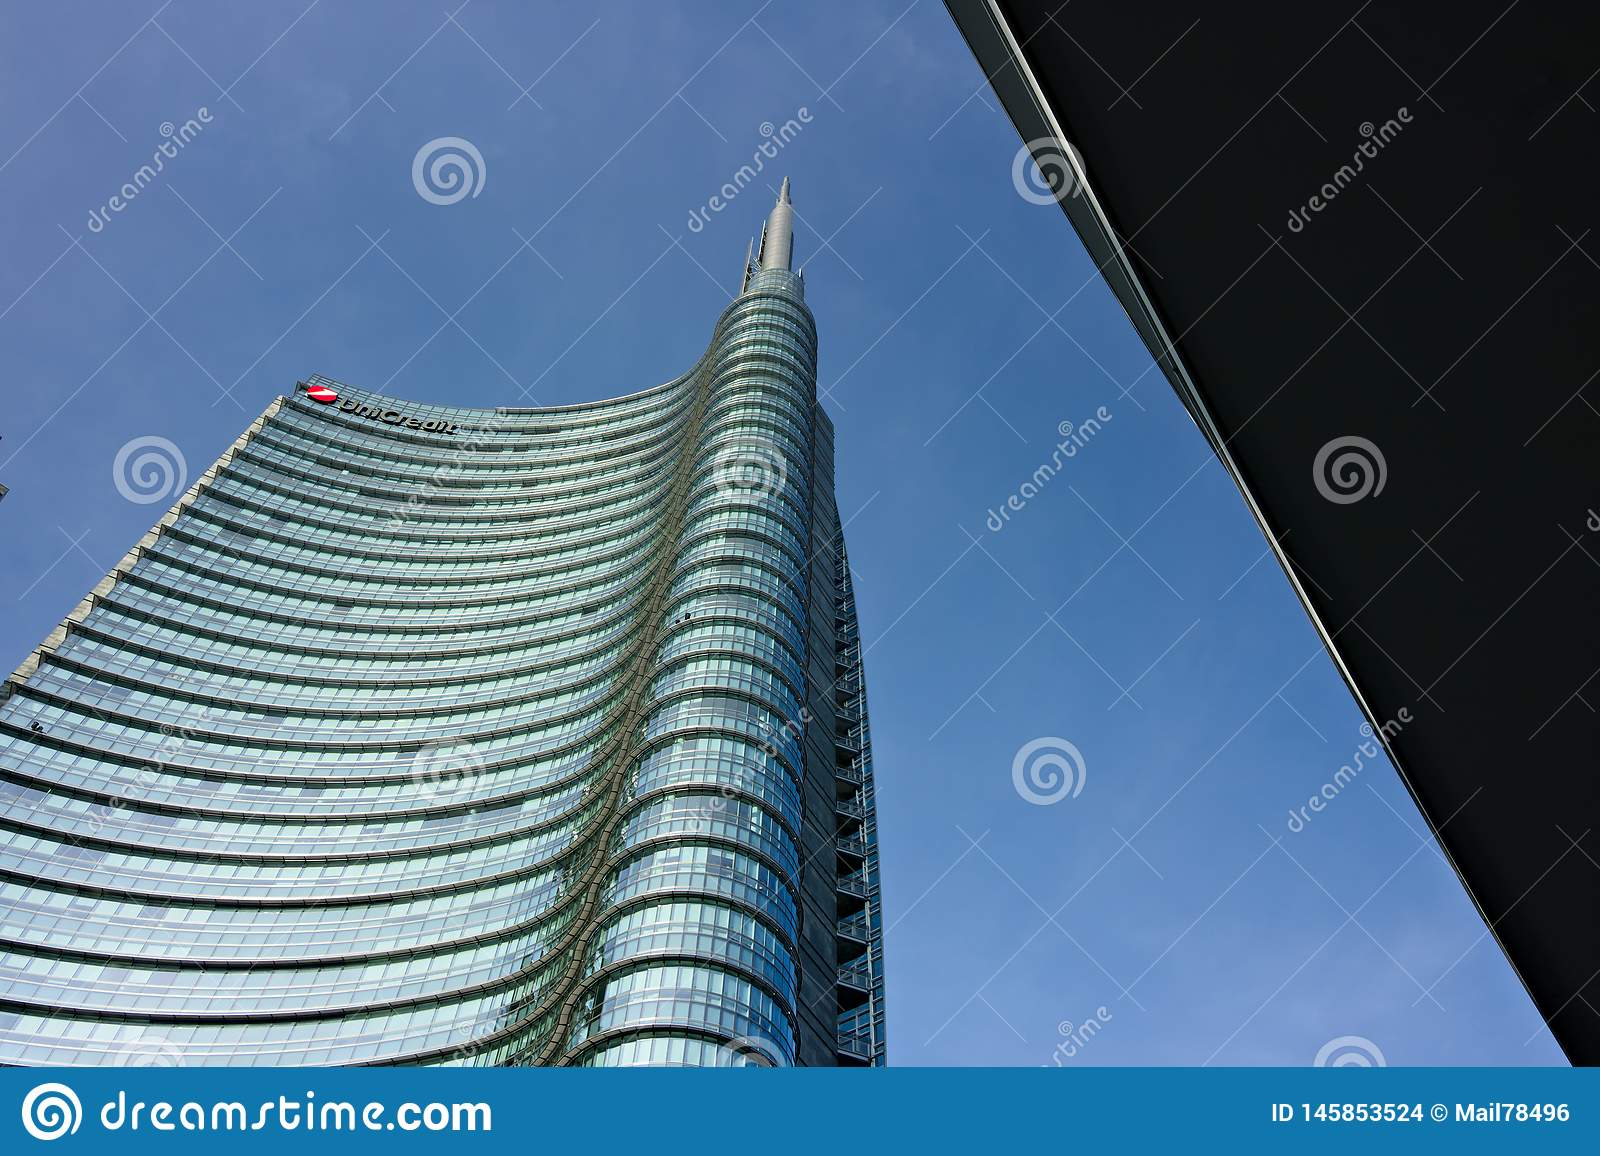 Milan, Italy. March 21 2019. The real estate complex with the Unicredit skyscraper in Piazza Gae Aulenti